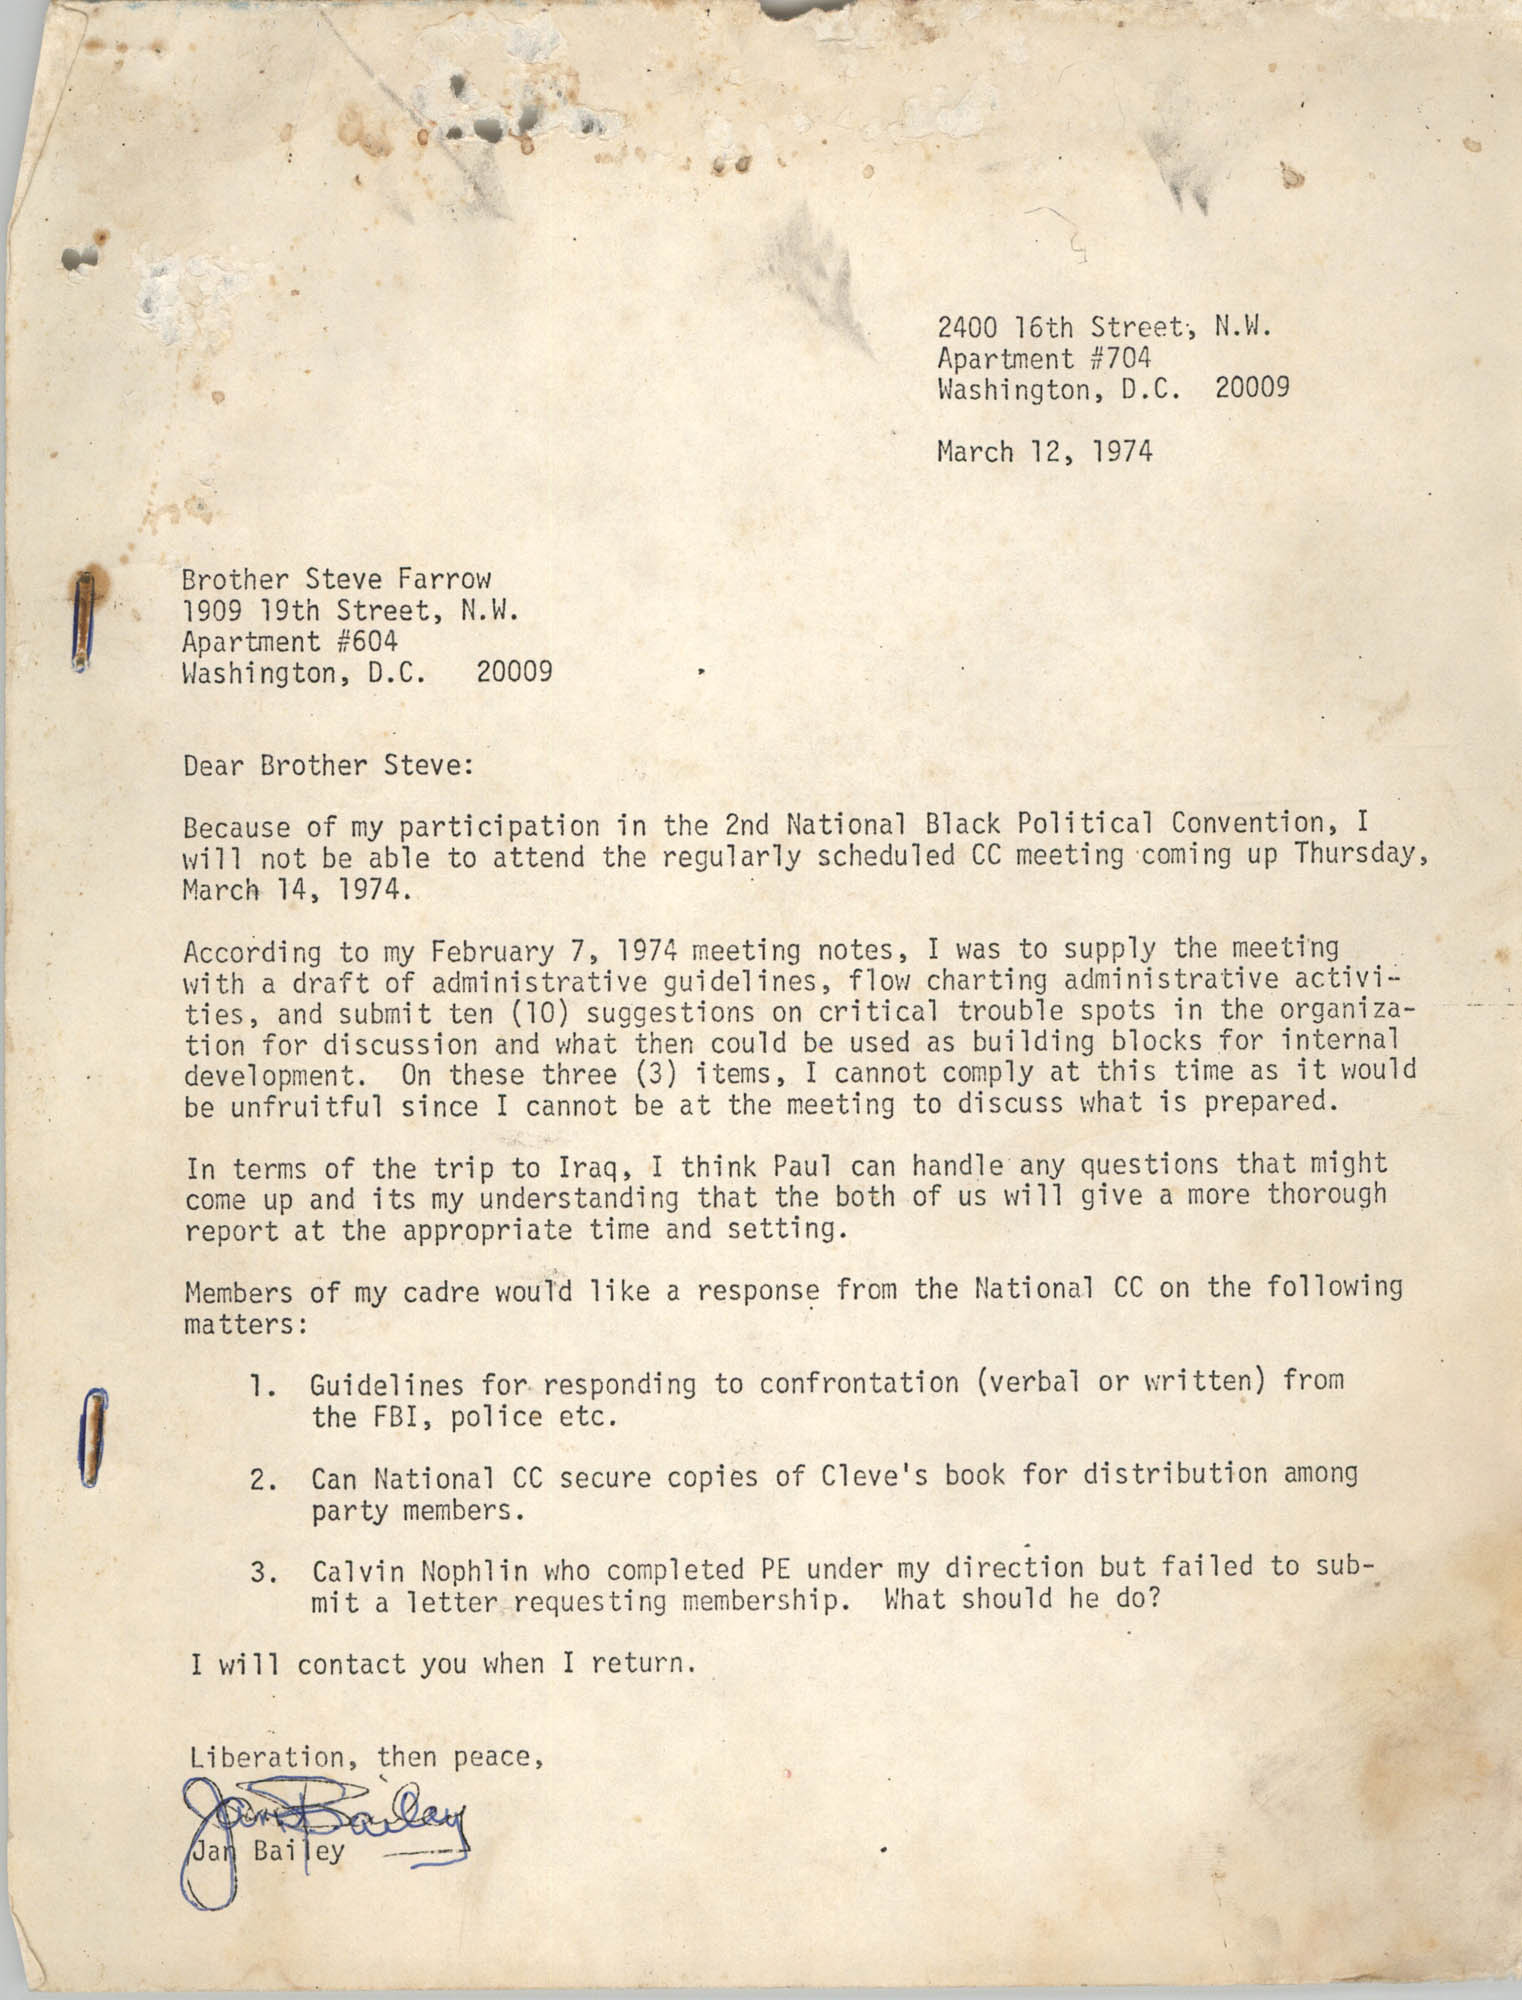 Letter from Jan Bailey to Steve Farrow, March 12, 1974